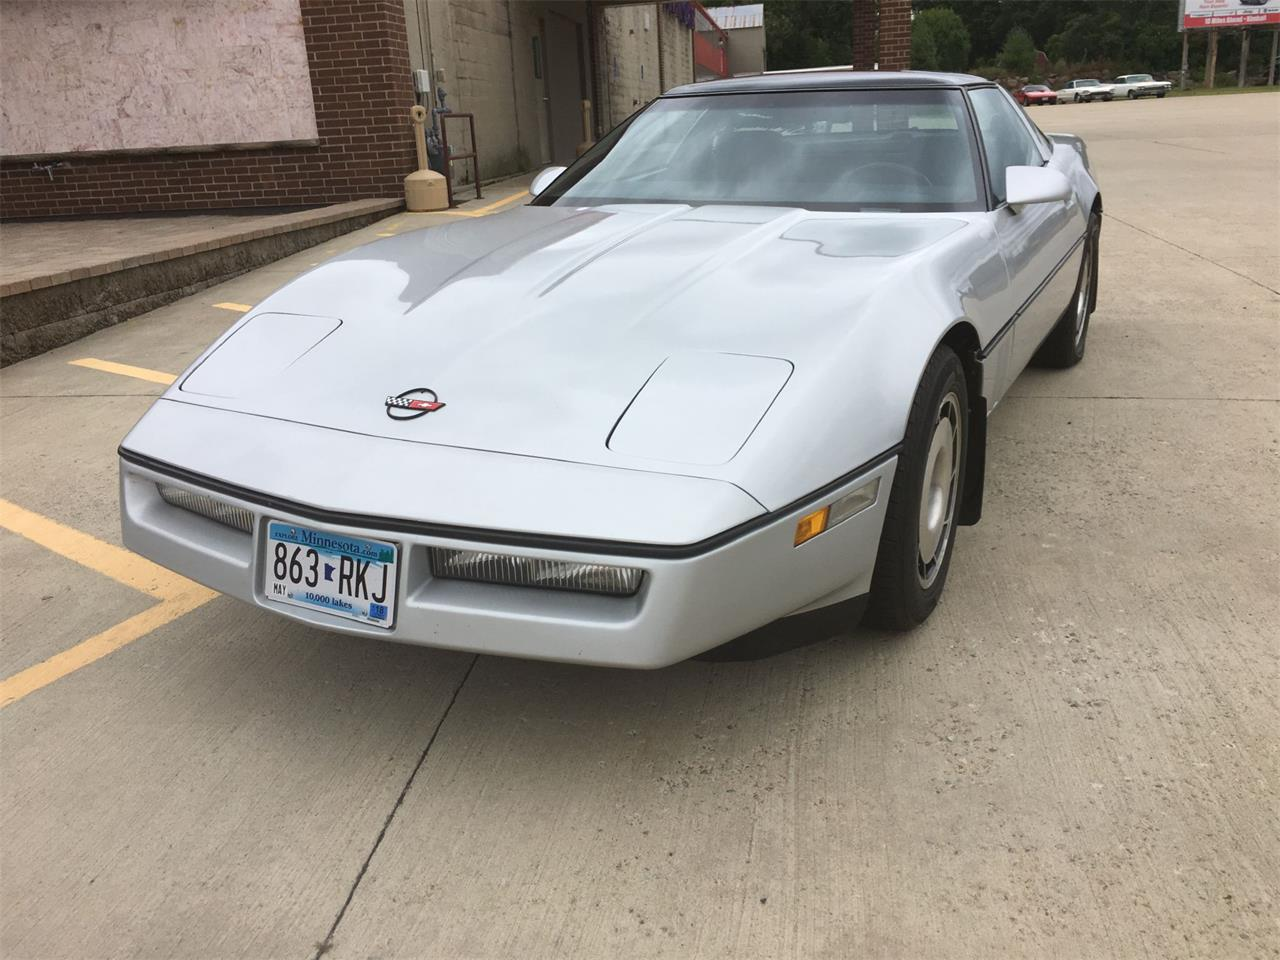 Large Picture of 1984 Corvette located in Annandale Minnesota - $11,500.00 - LME4